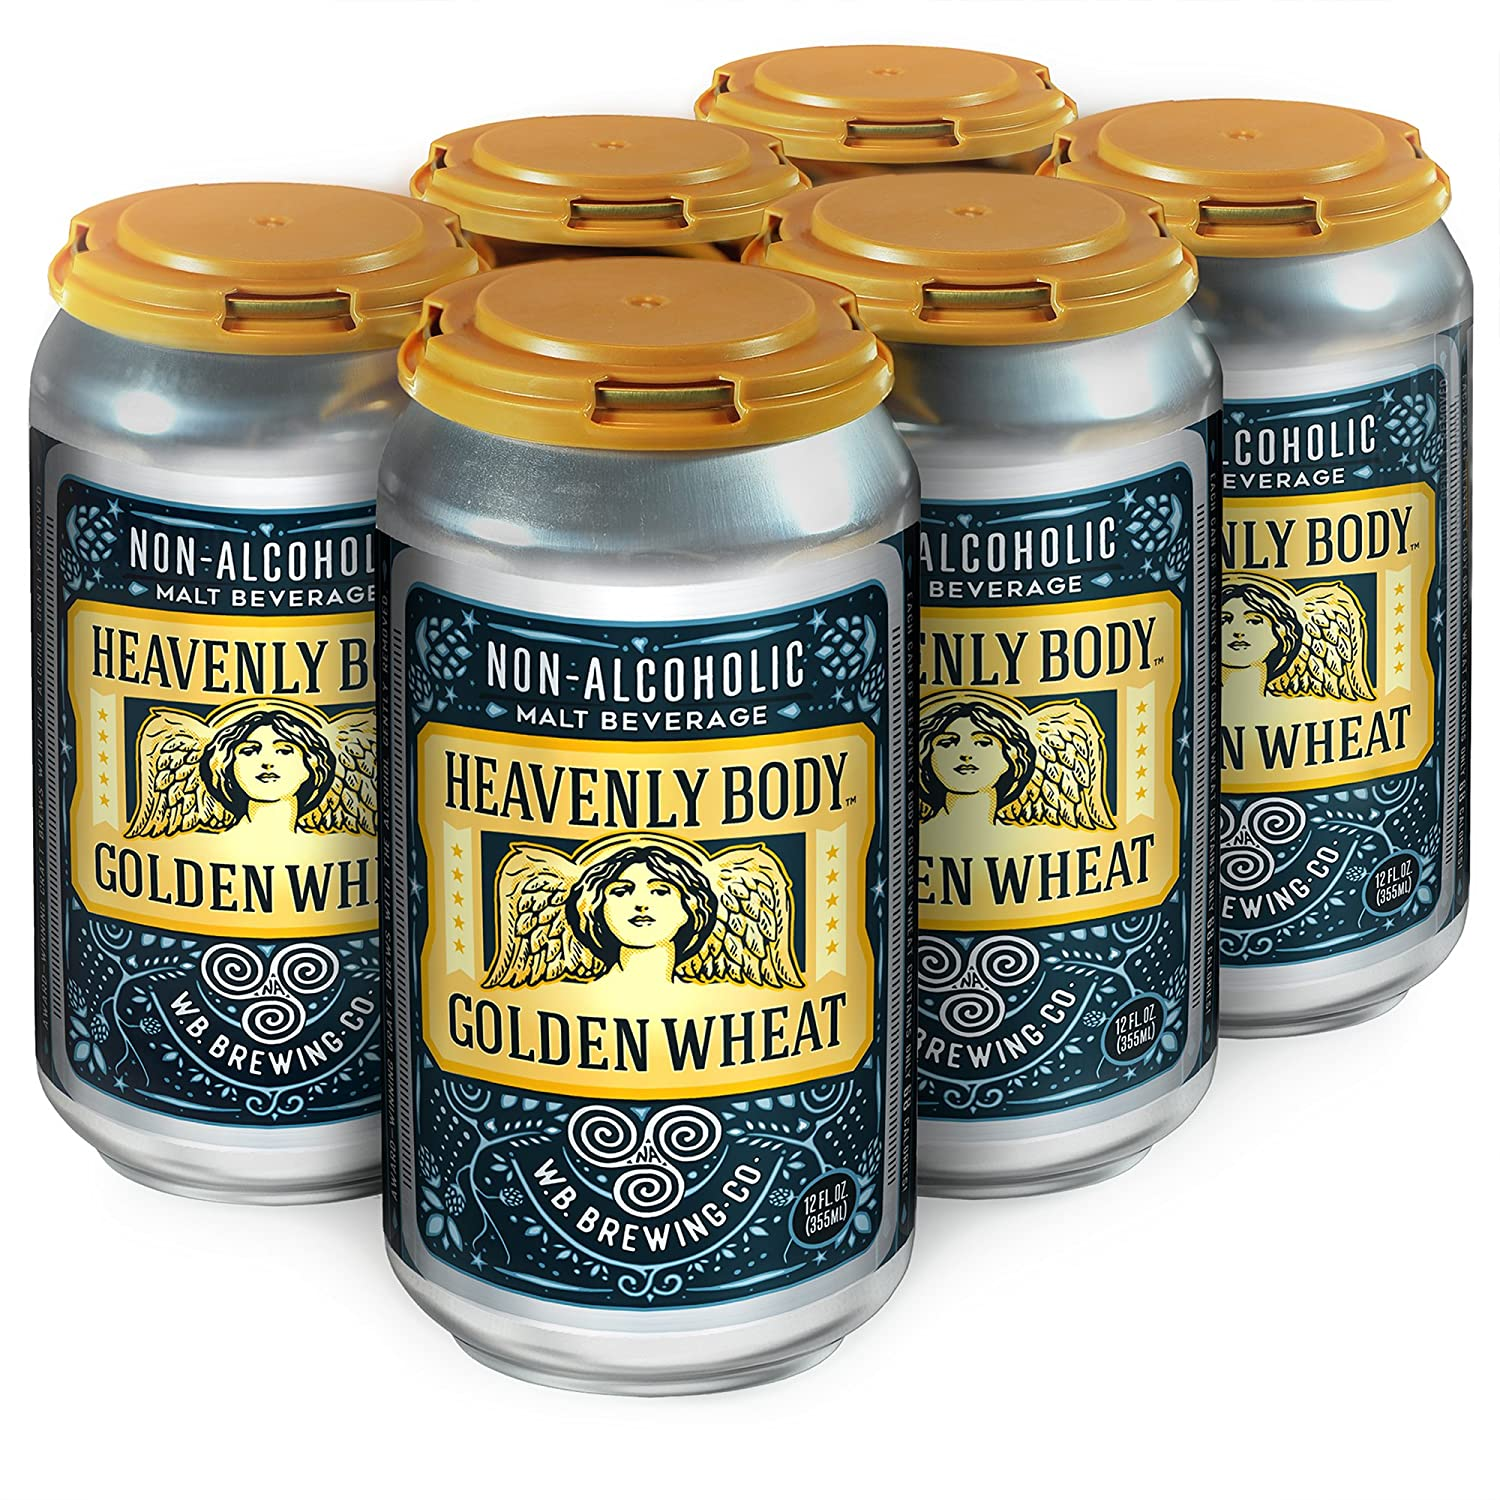 The Wellbeing Brewery's Heavenly Body Beer travel product recommended by Tom Hallett on Pretty Progressive.